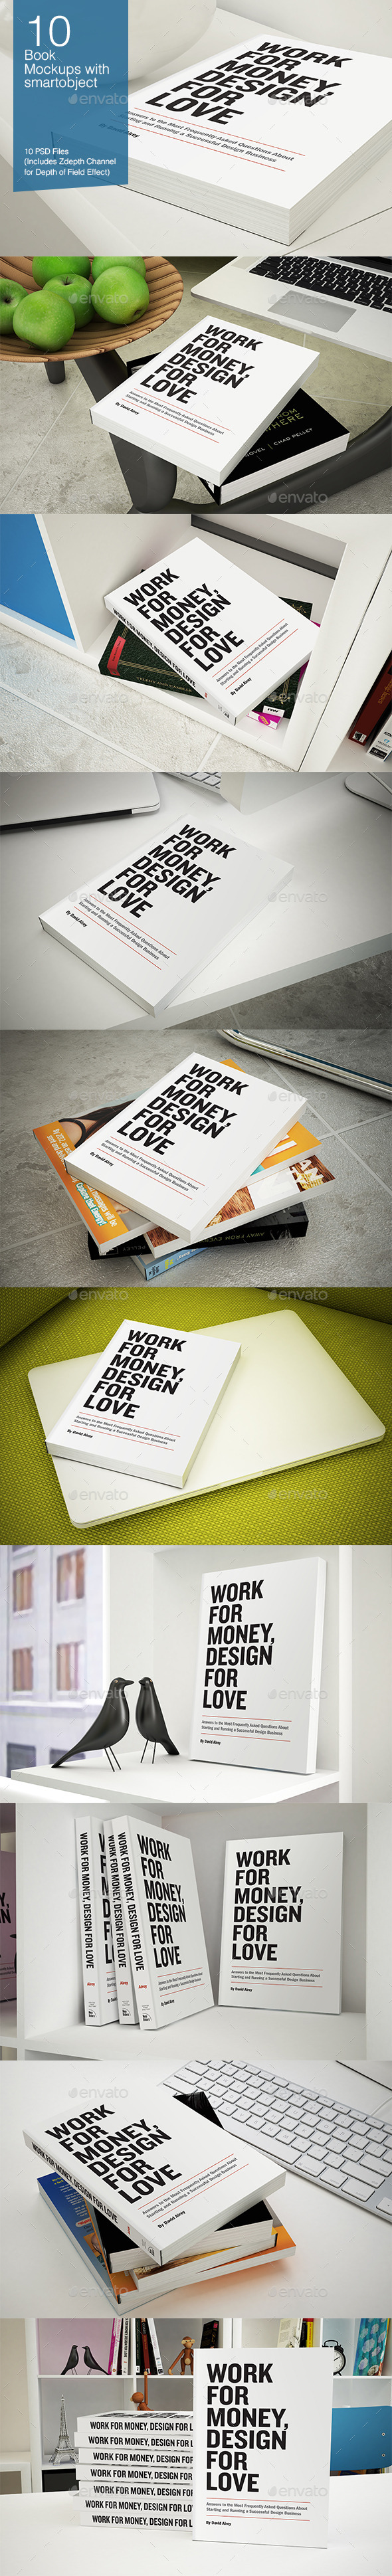 GraphicRiver Book Mockup 10 poses 9257957